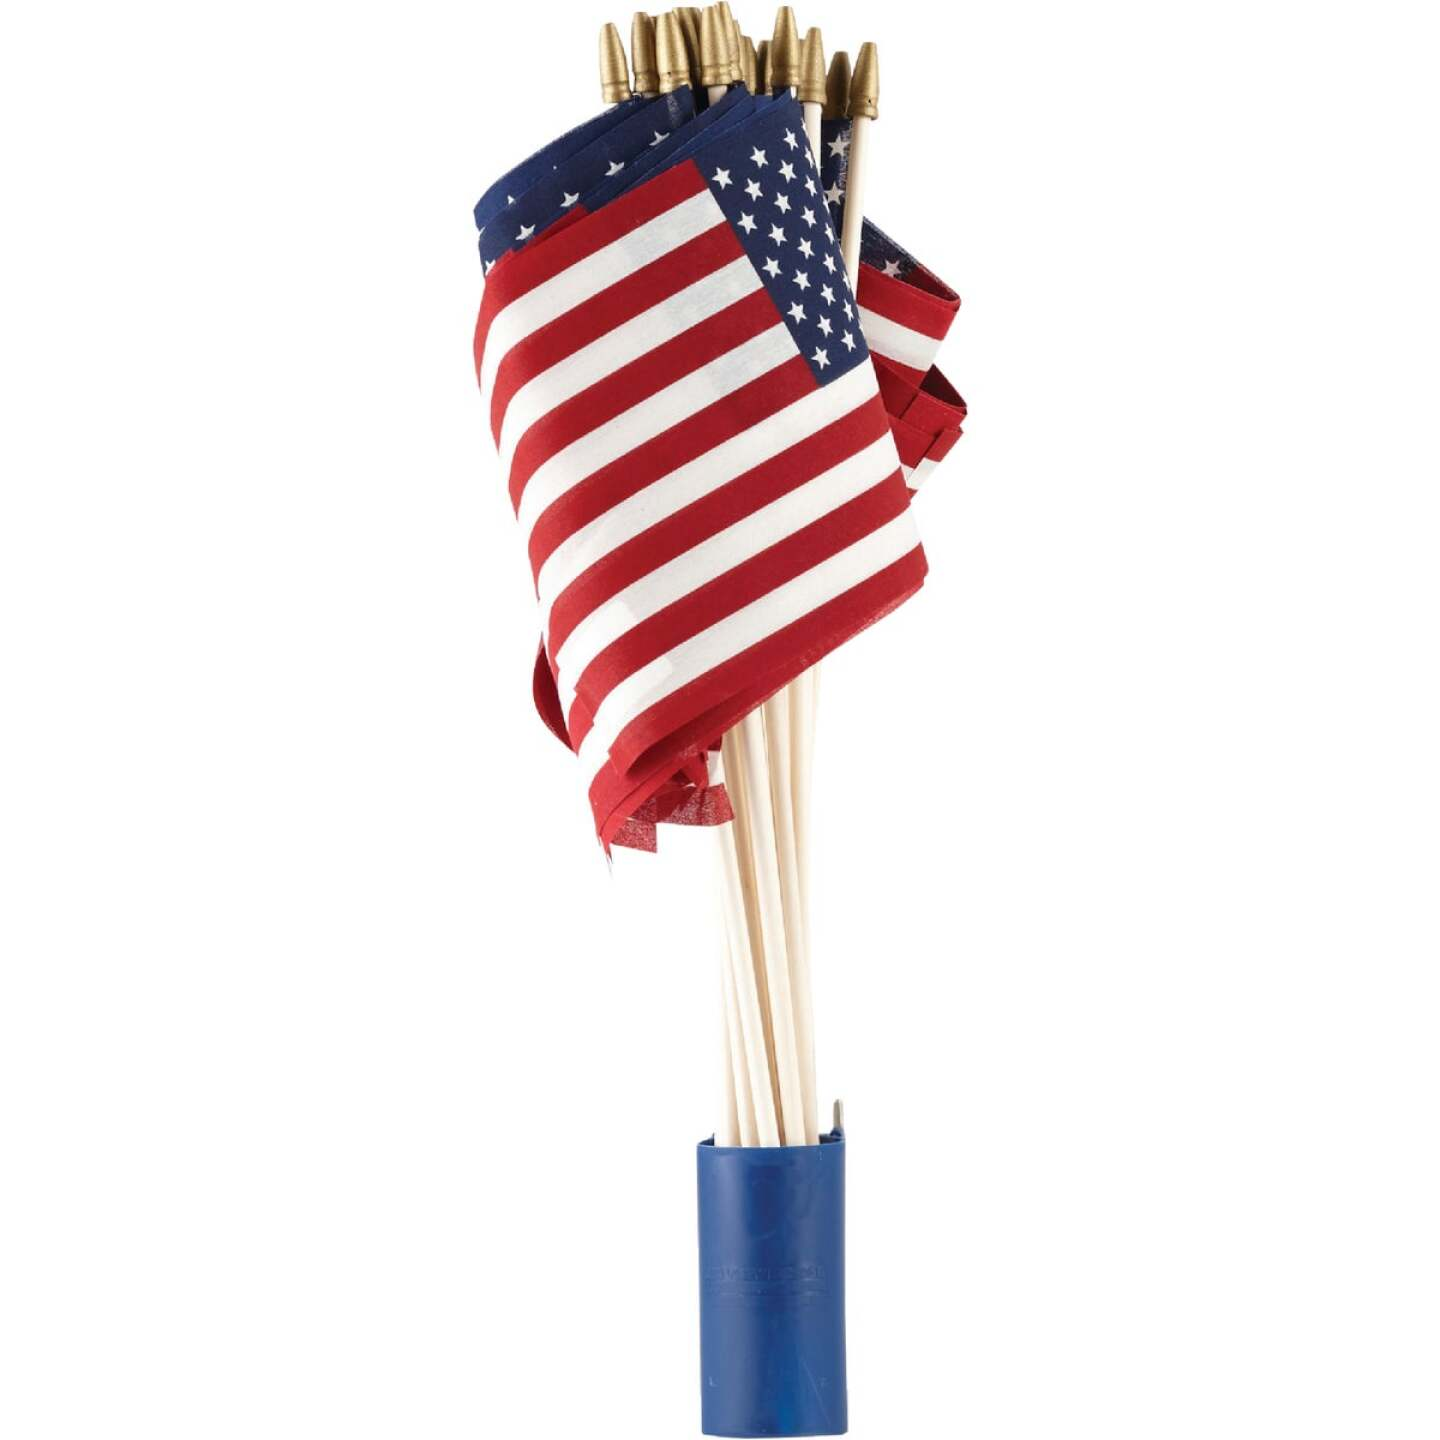 Valley Forge 8 In. x 12 In. Polycotton Stick American Flag Image 2